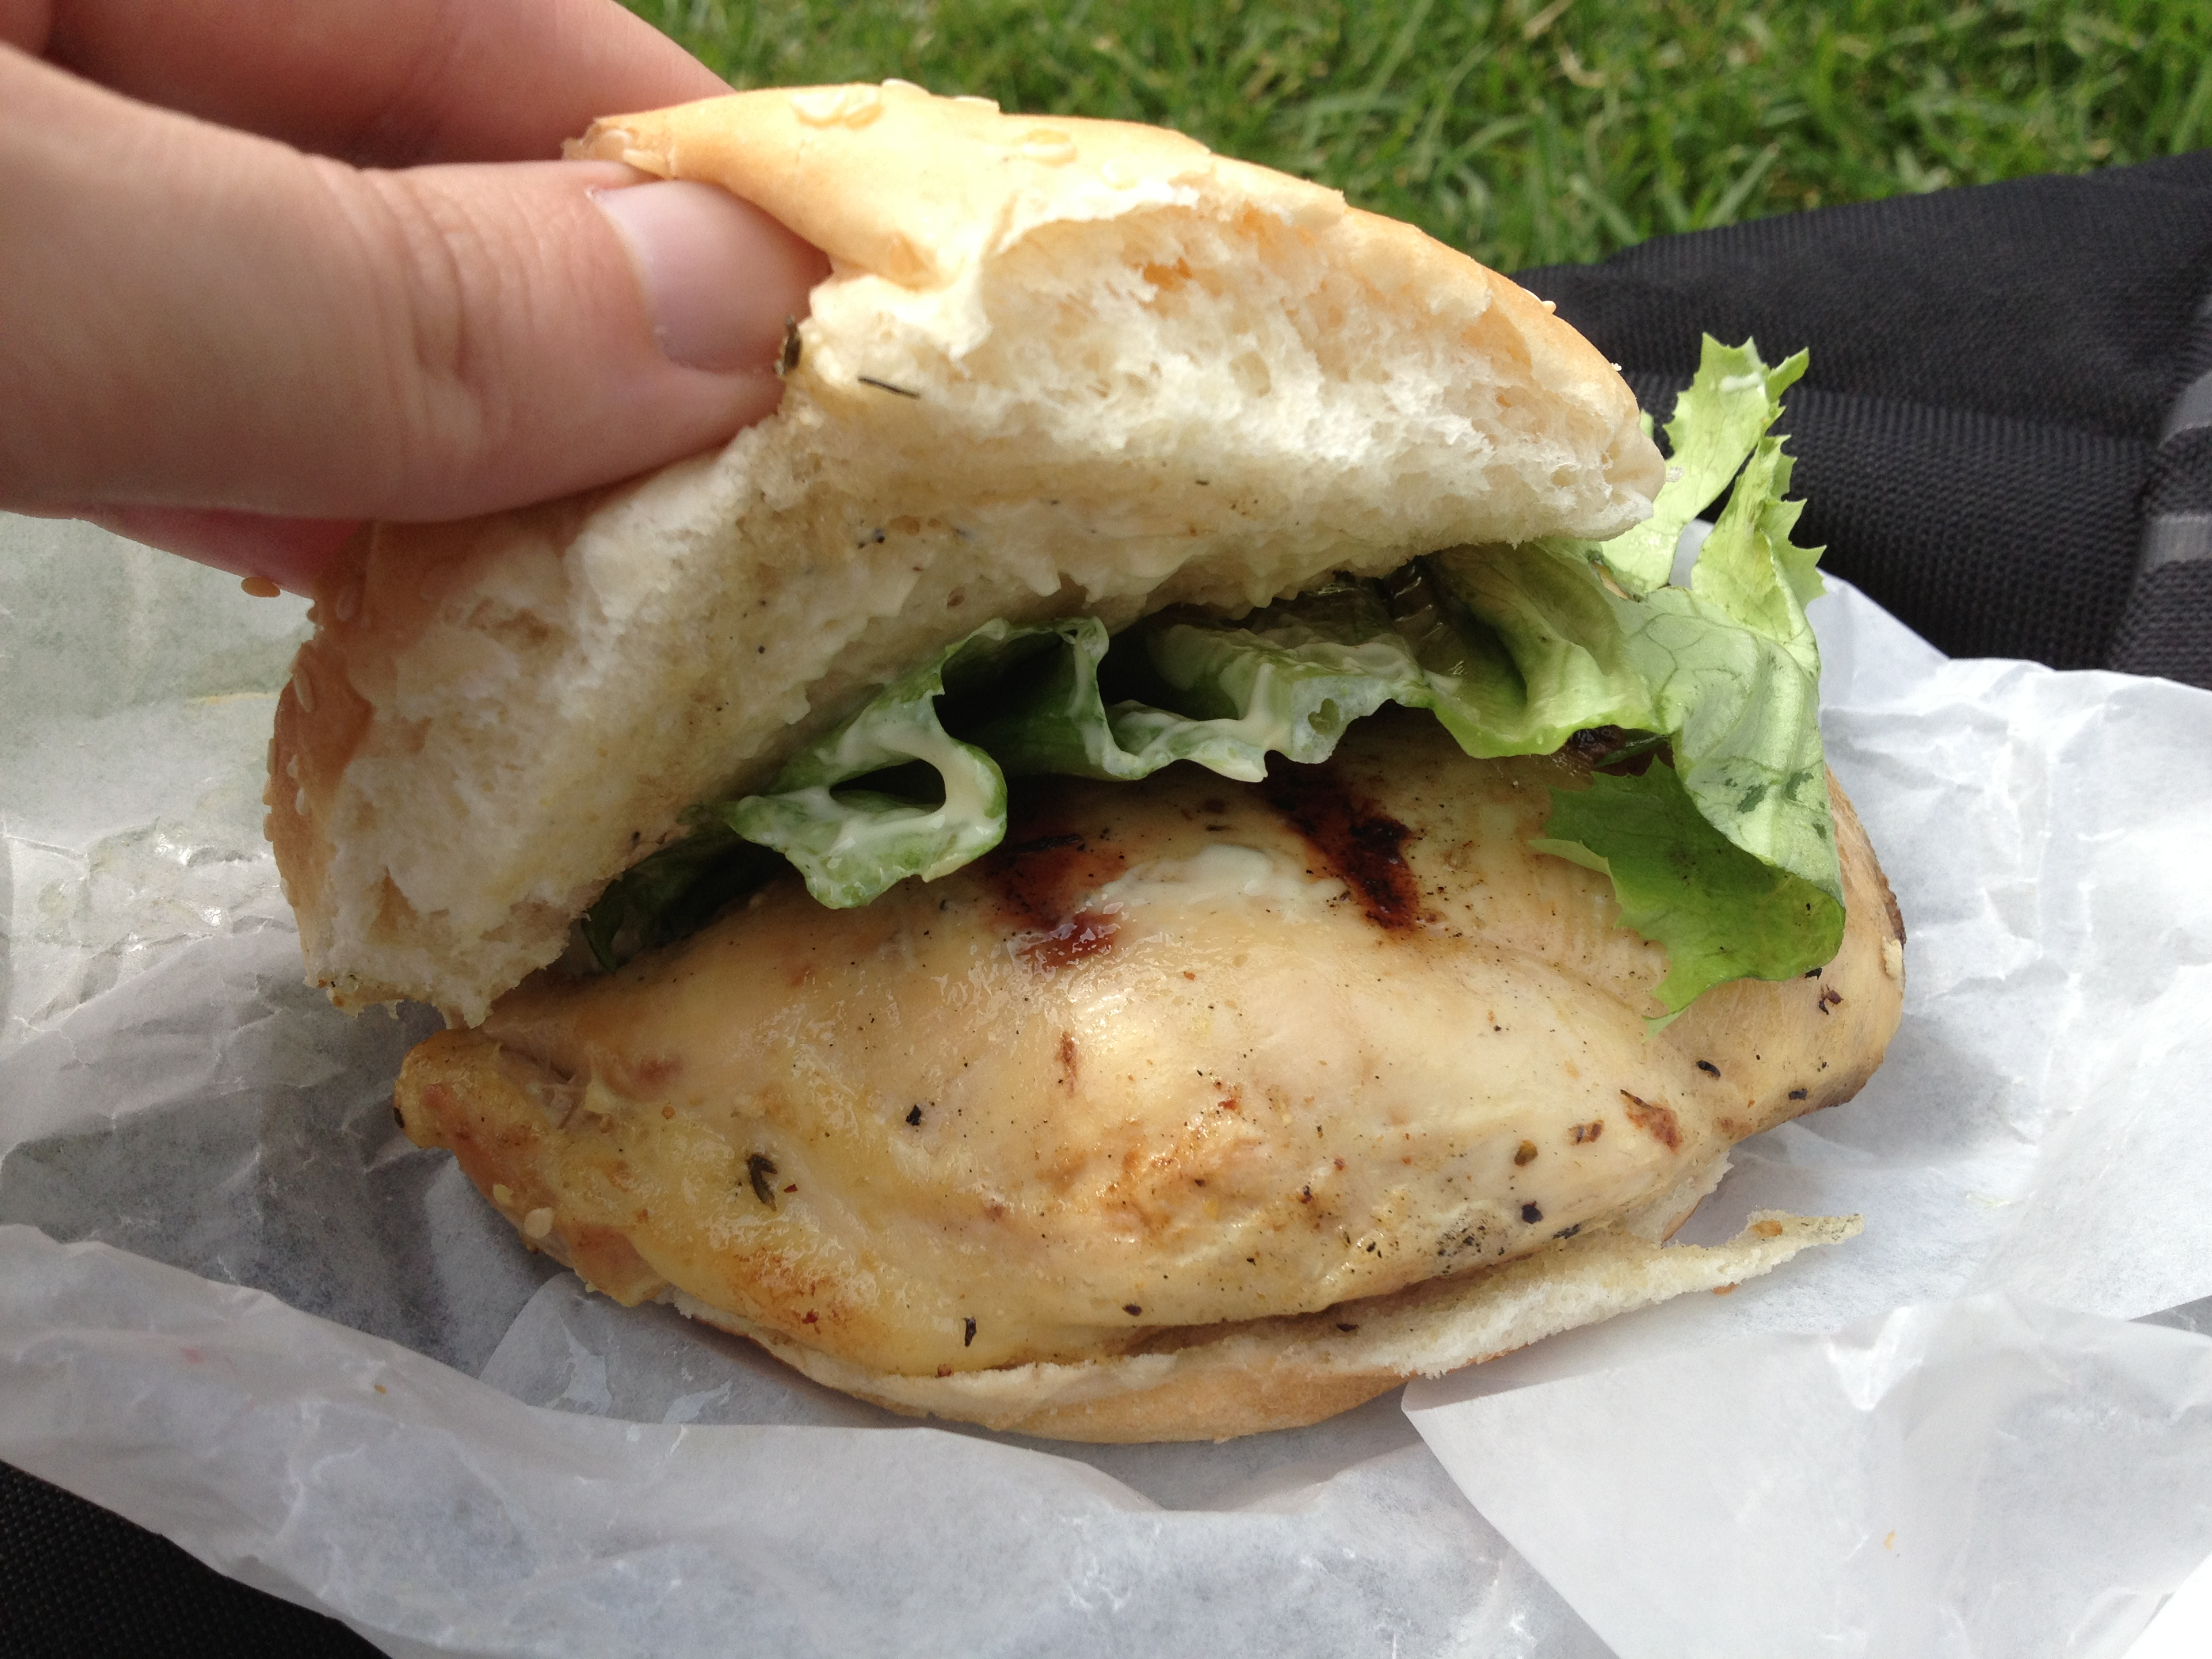 'Back to Earth' Chicken Sandwich